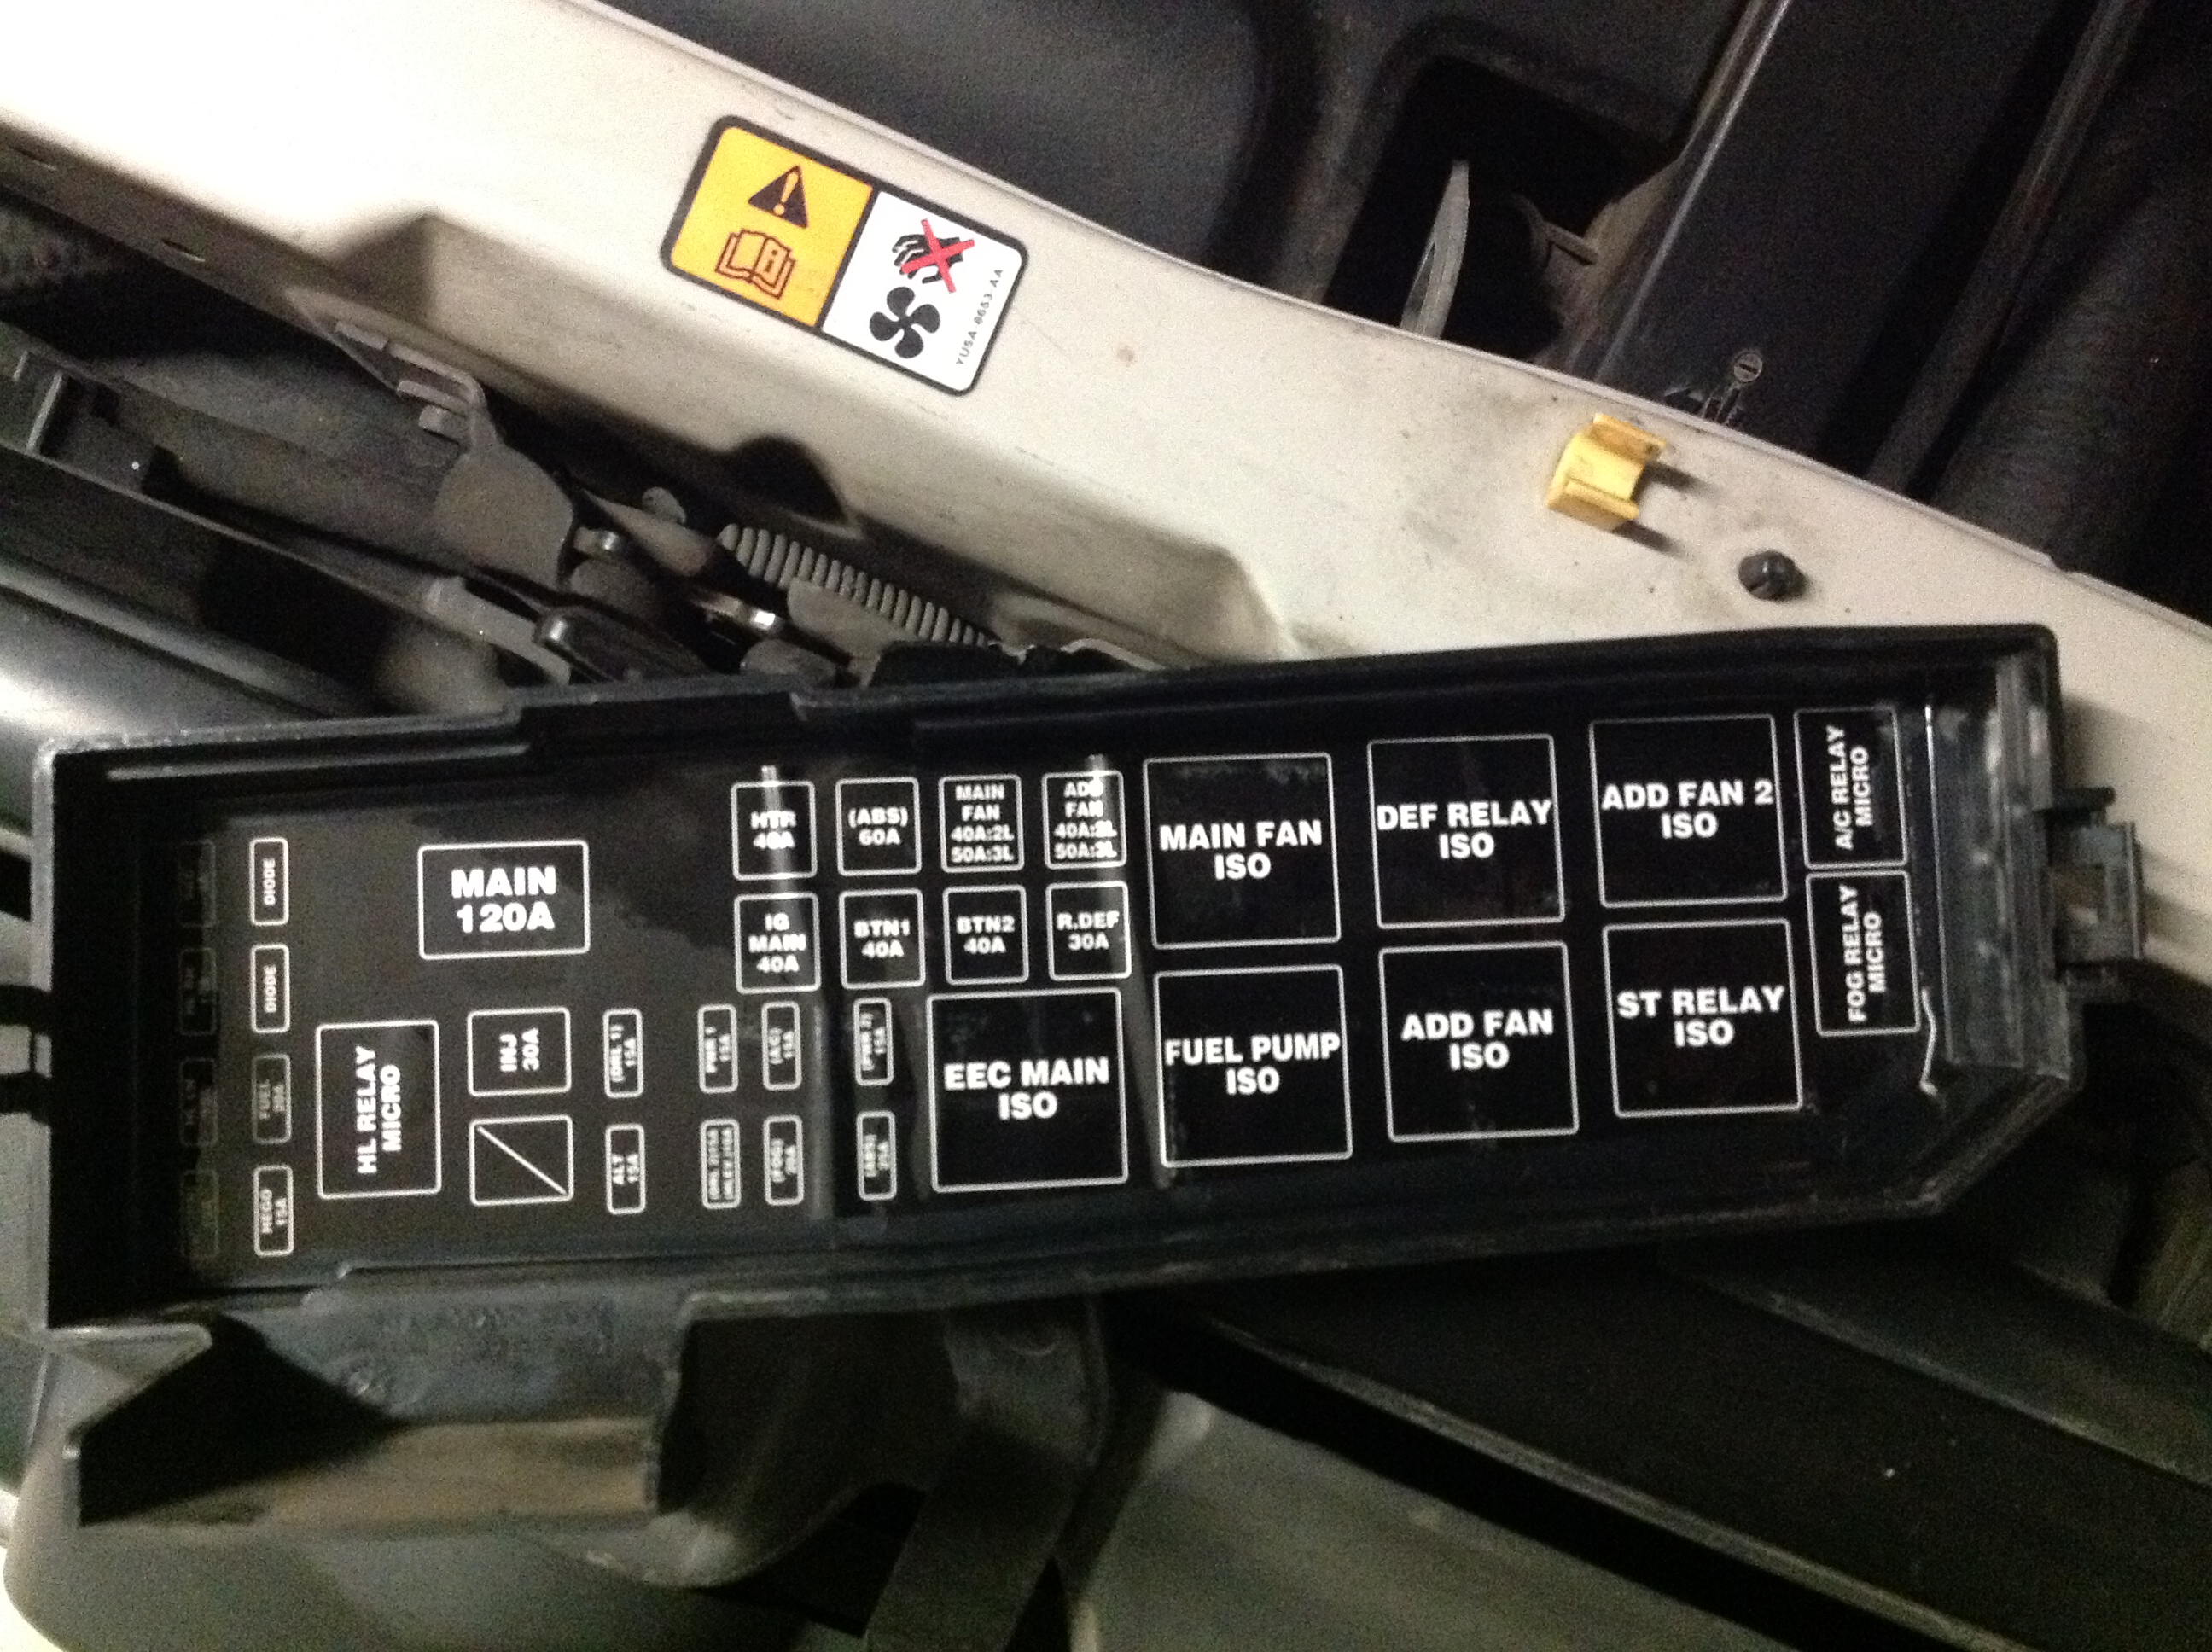 Mazda 3 2011 Fuse Box Location